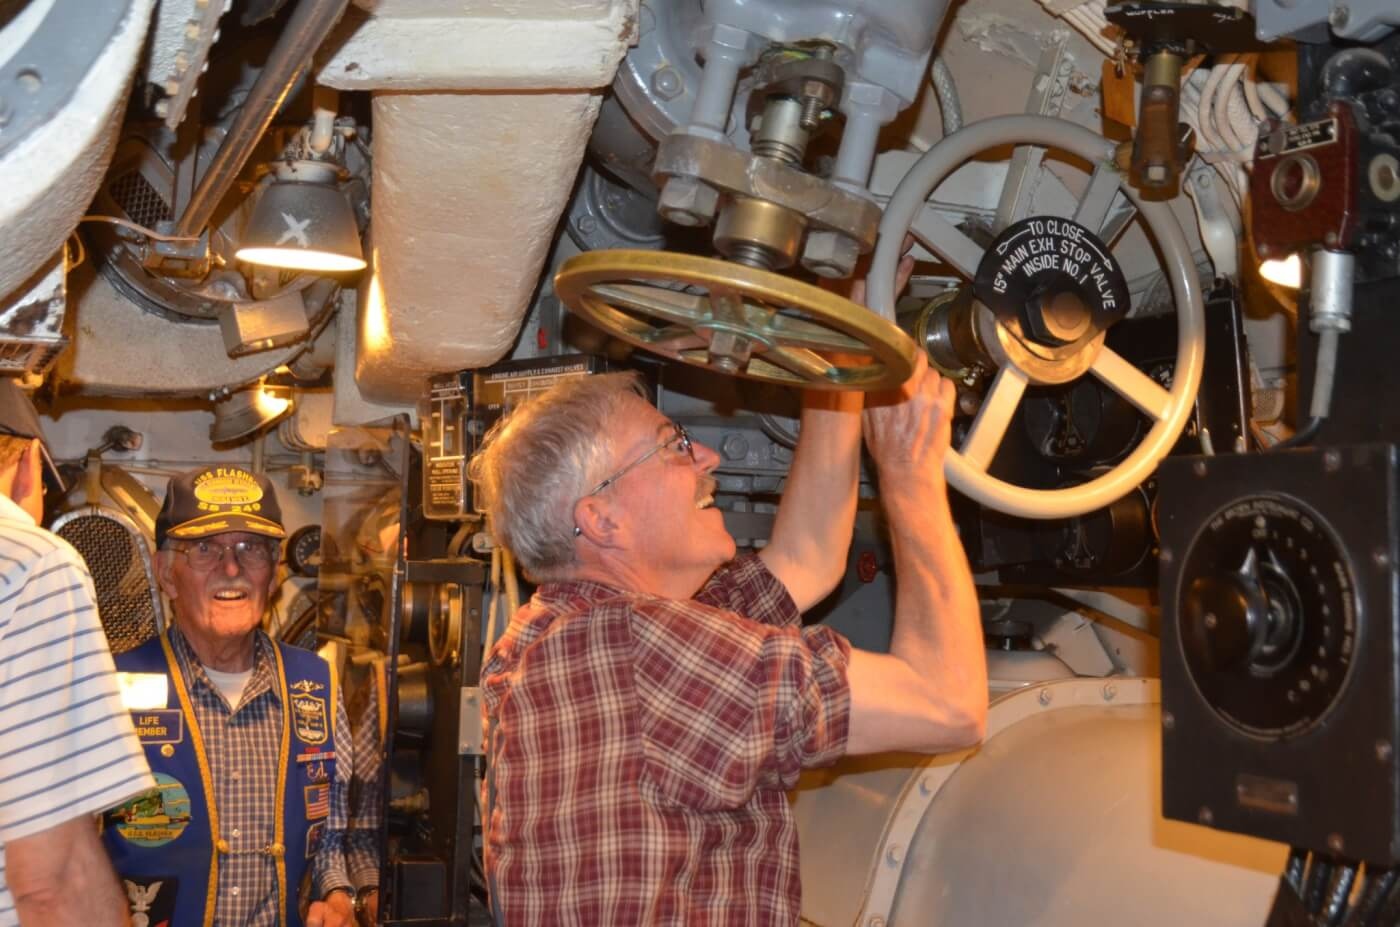 Charles Butcher, Chief of the Boat, opening the exhaust valve prior to starting the motor